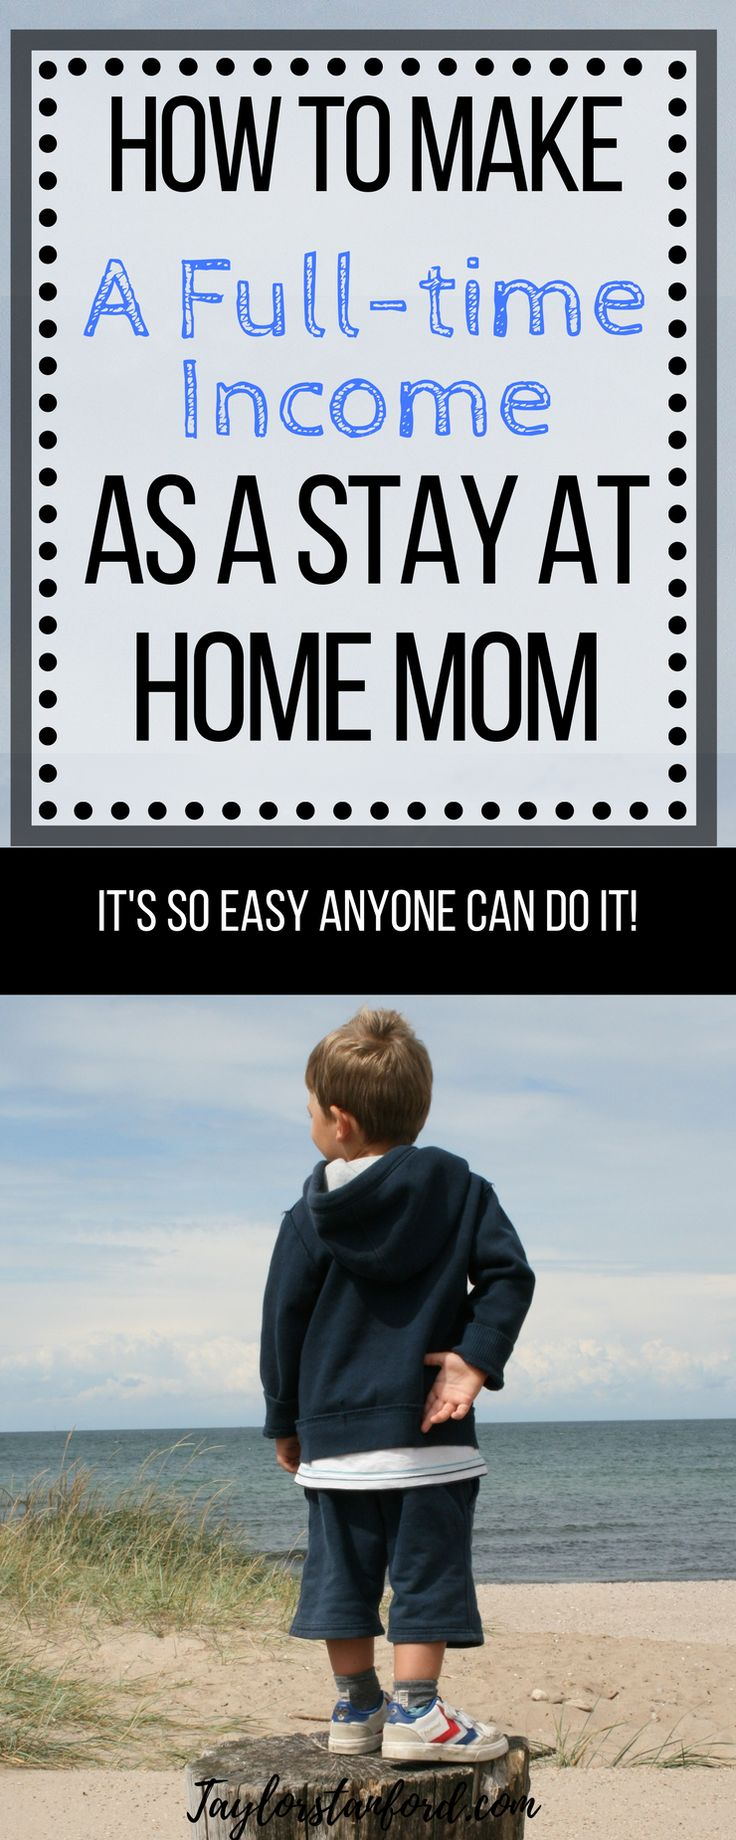 How to make money as a stay at home mom. #stayathomemom #makemoneyonline #momblogger